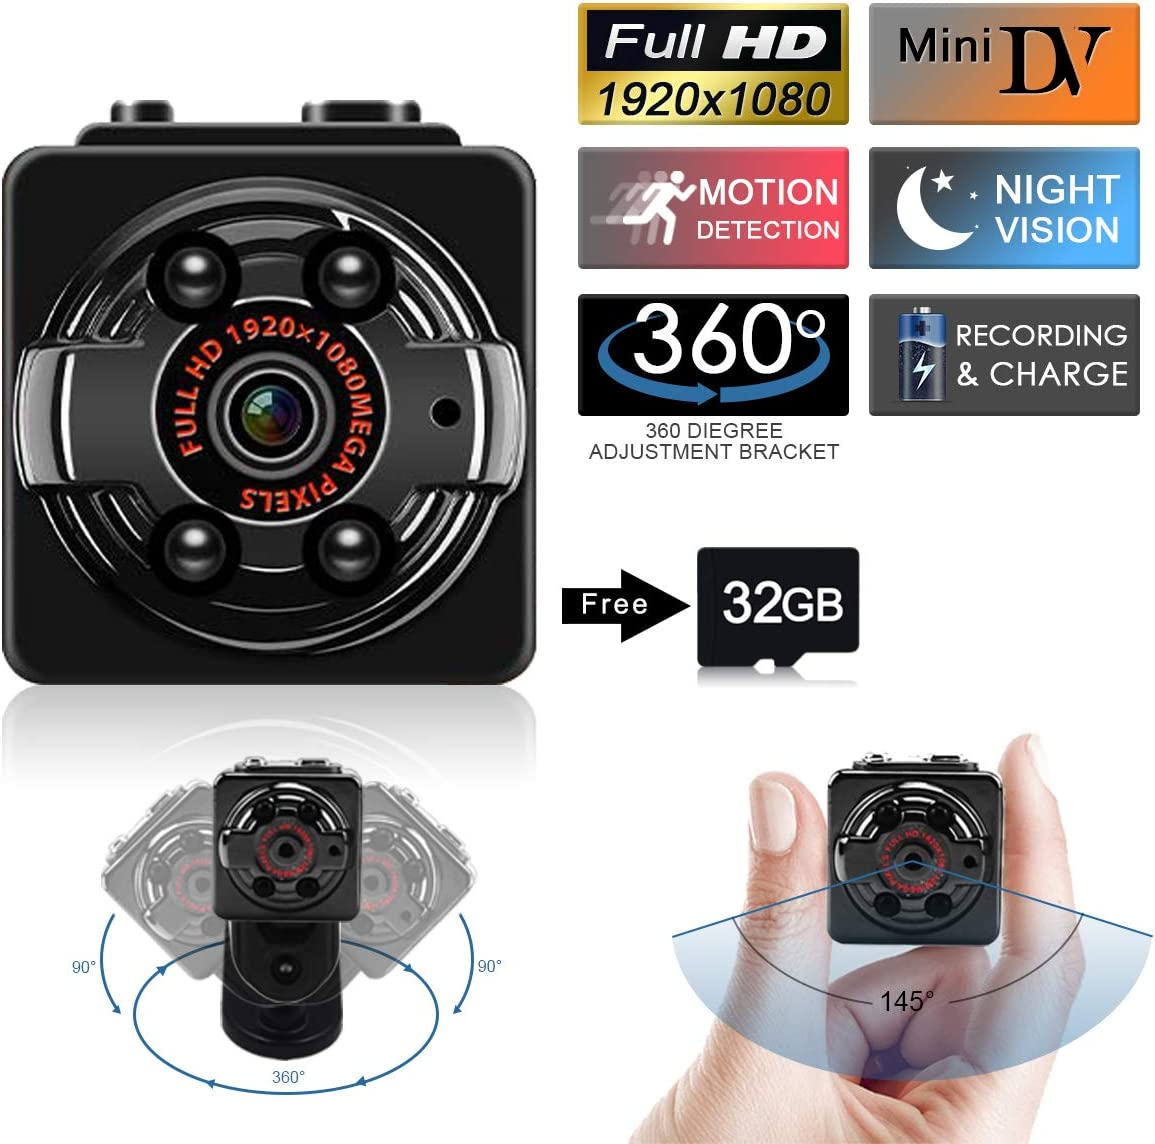 SUSZAVSS Mini Camera Hidden Spy Camera, Protable Video Recorder with 32GB SD Card, HD 1080P DVR Night Vision Motion Detection Nanny Cam for Baby Pet Monitoring Home Office Car Security